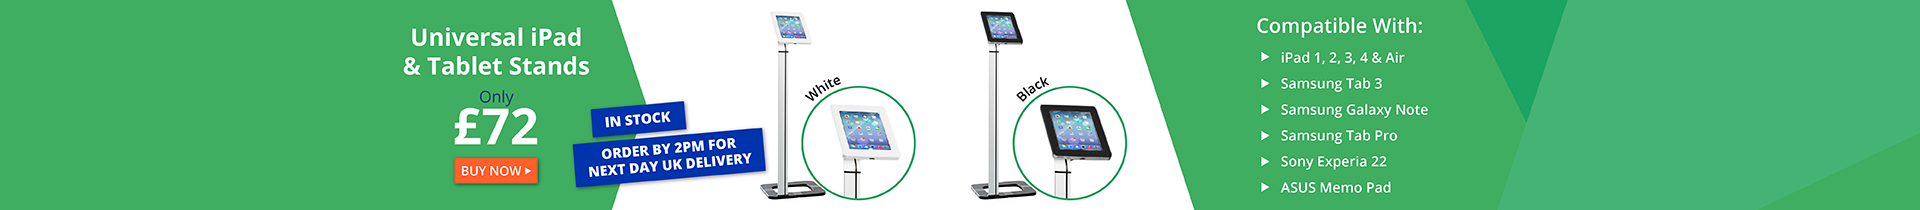 iPad-and-Tablet-Floor-Stands